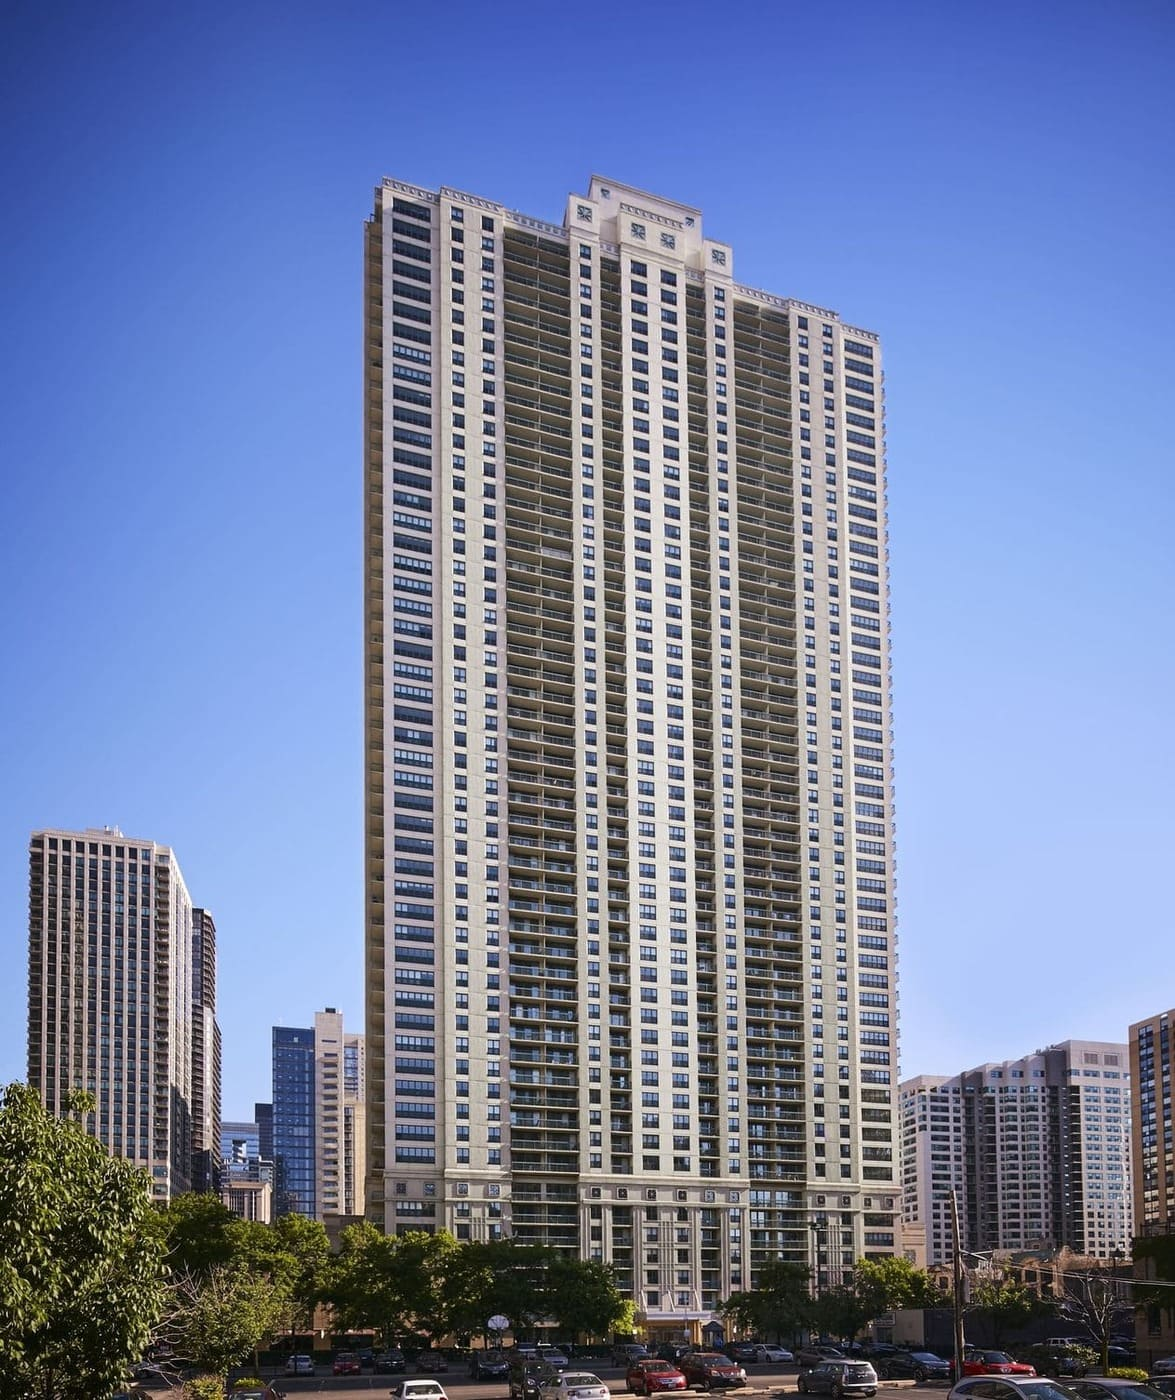 Best apartment search site in Chicago - One Superior Place